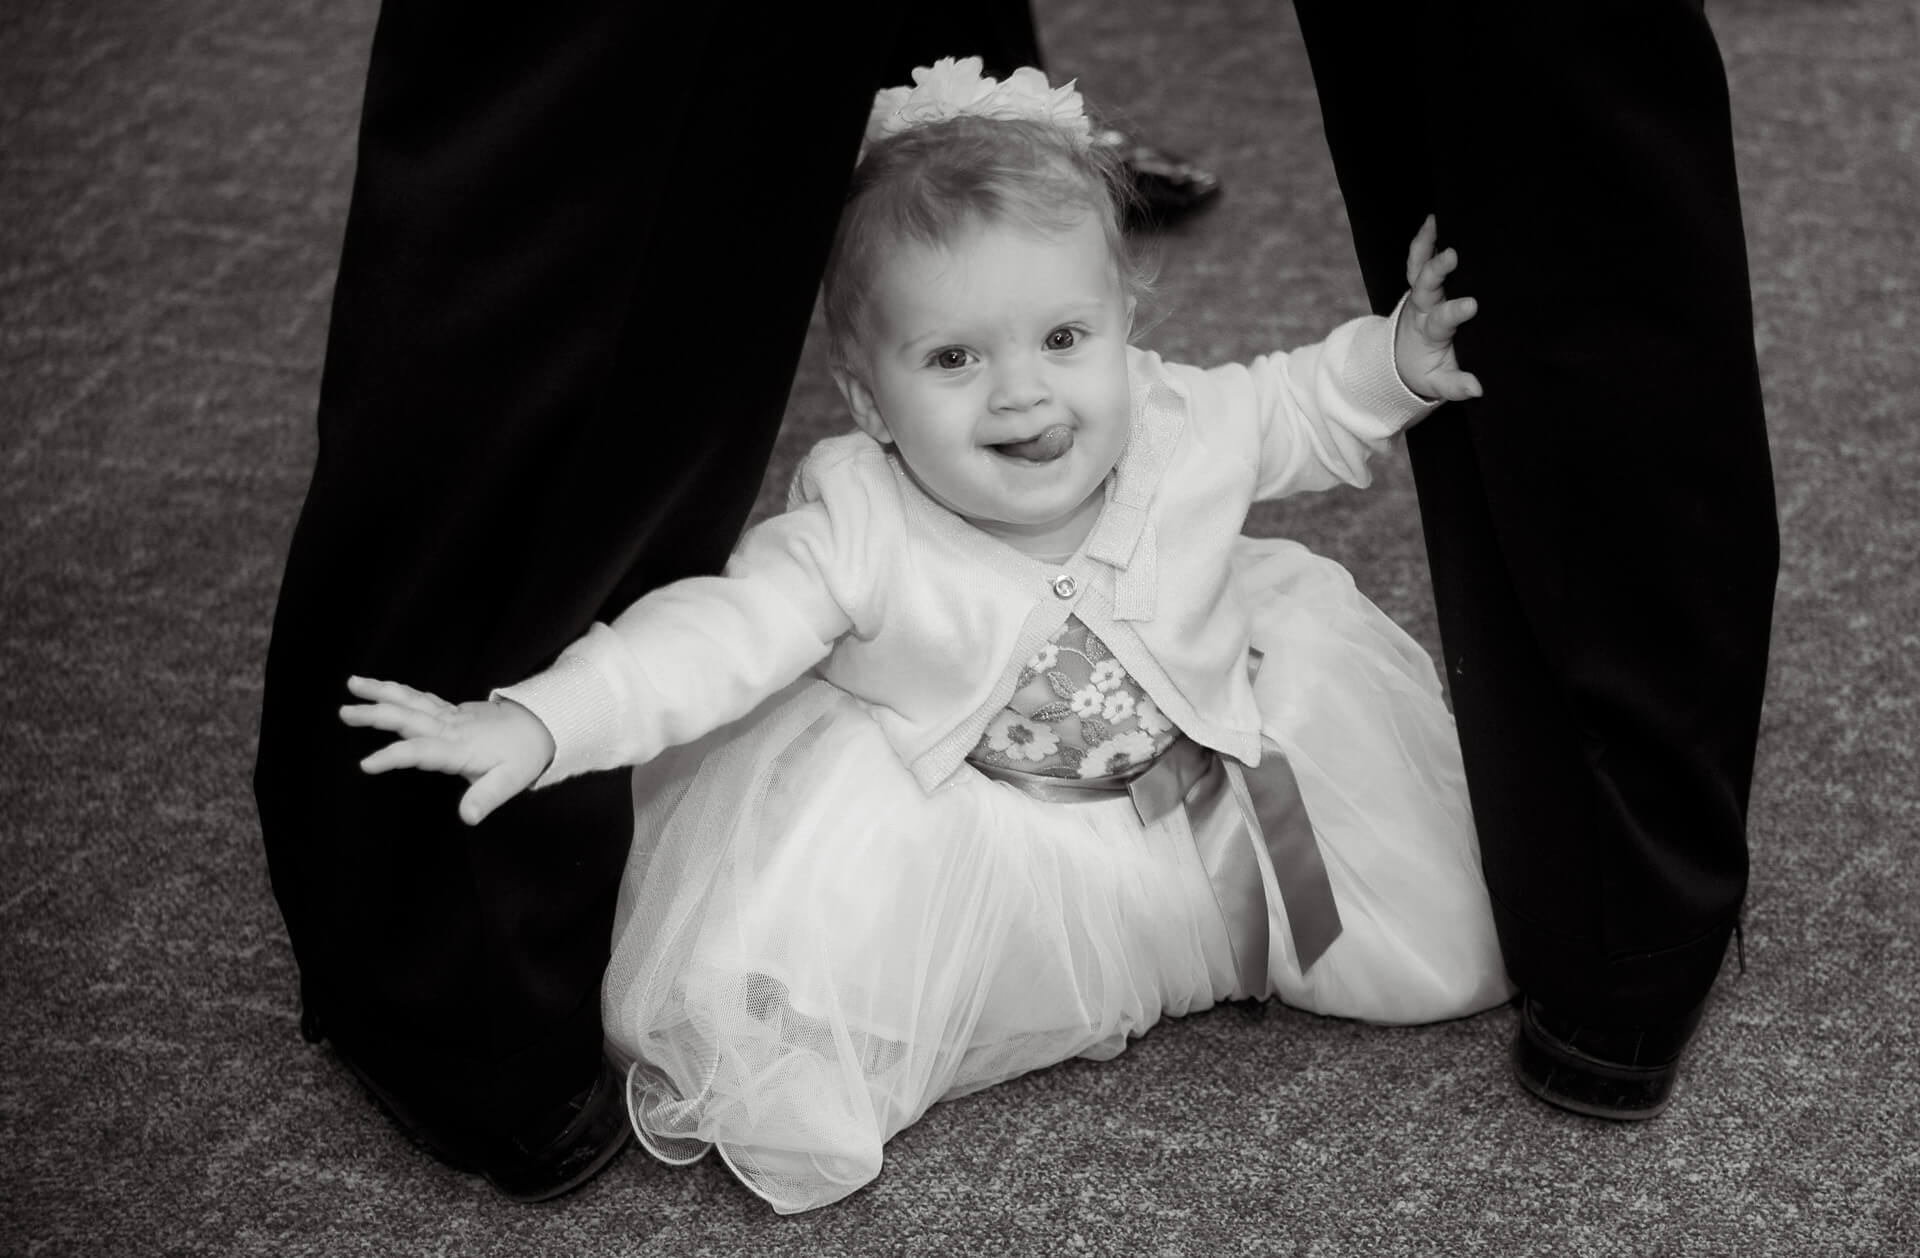 Candid wedding photography showing a baby flower girl playing between her father's legs during a Detroit, Michigan wedding.